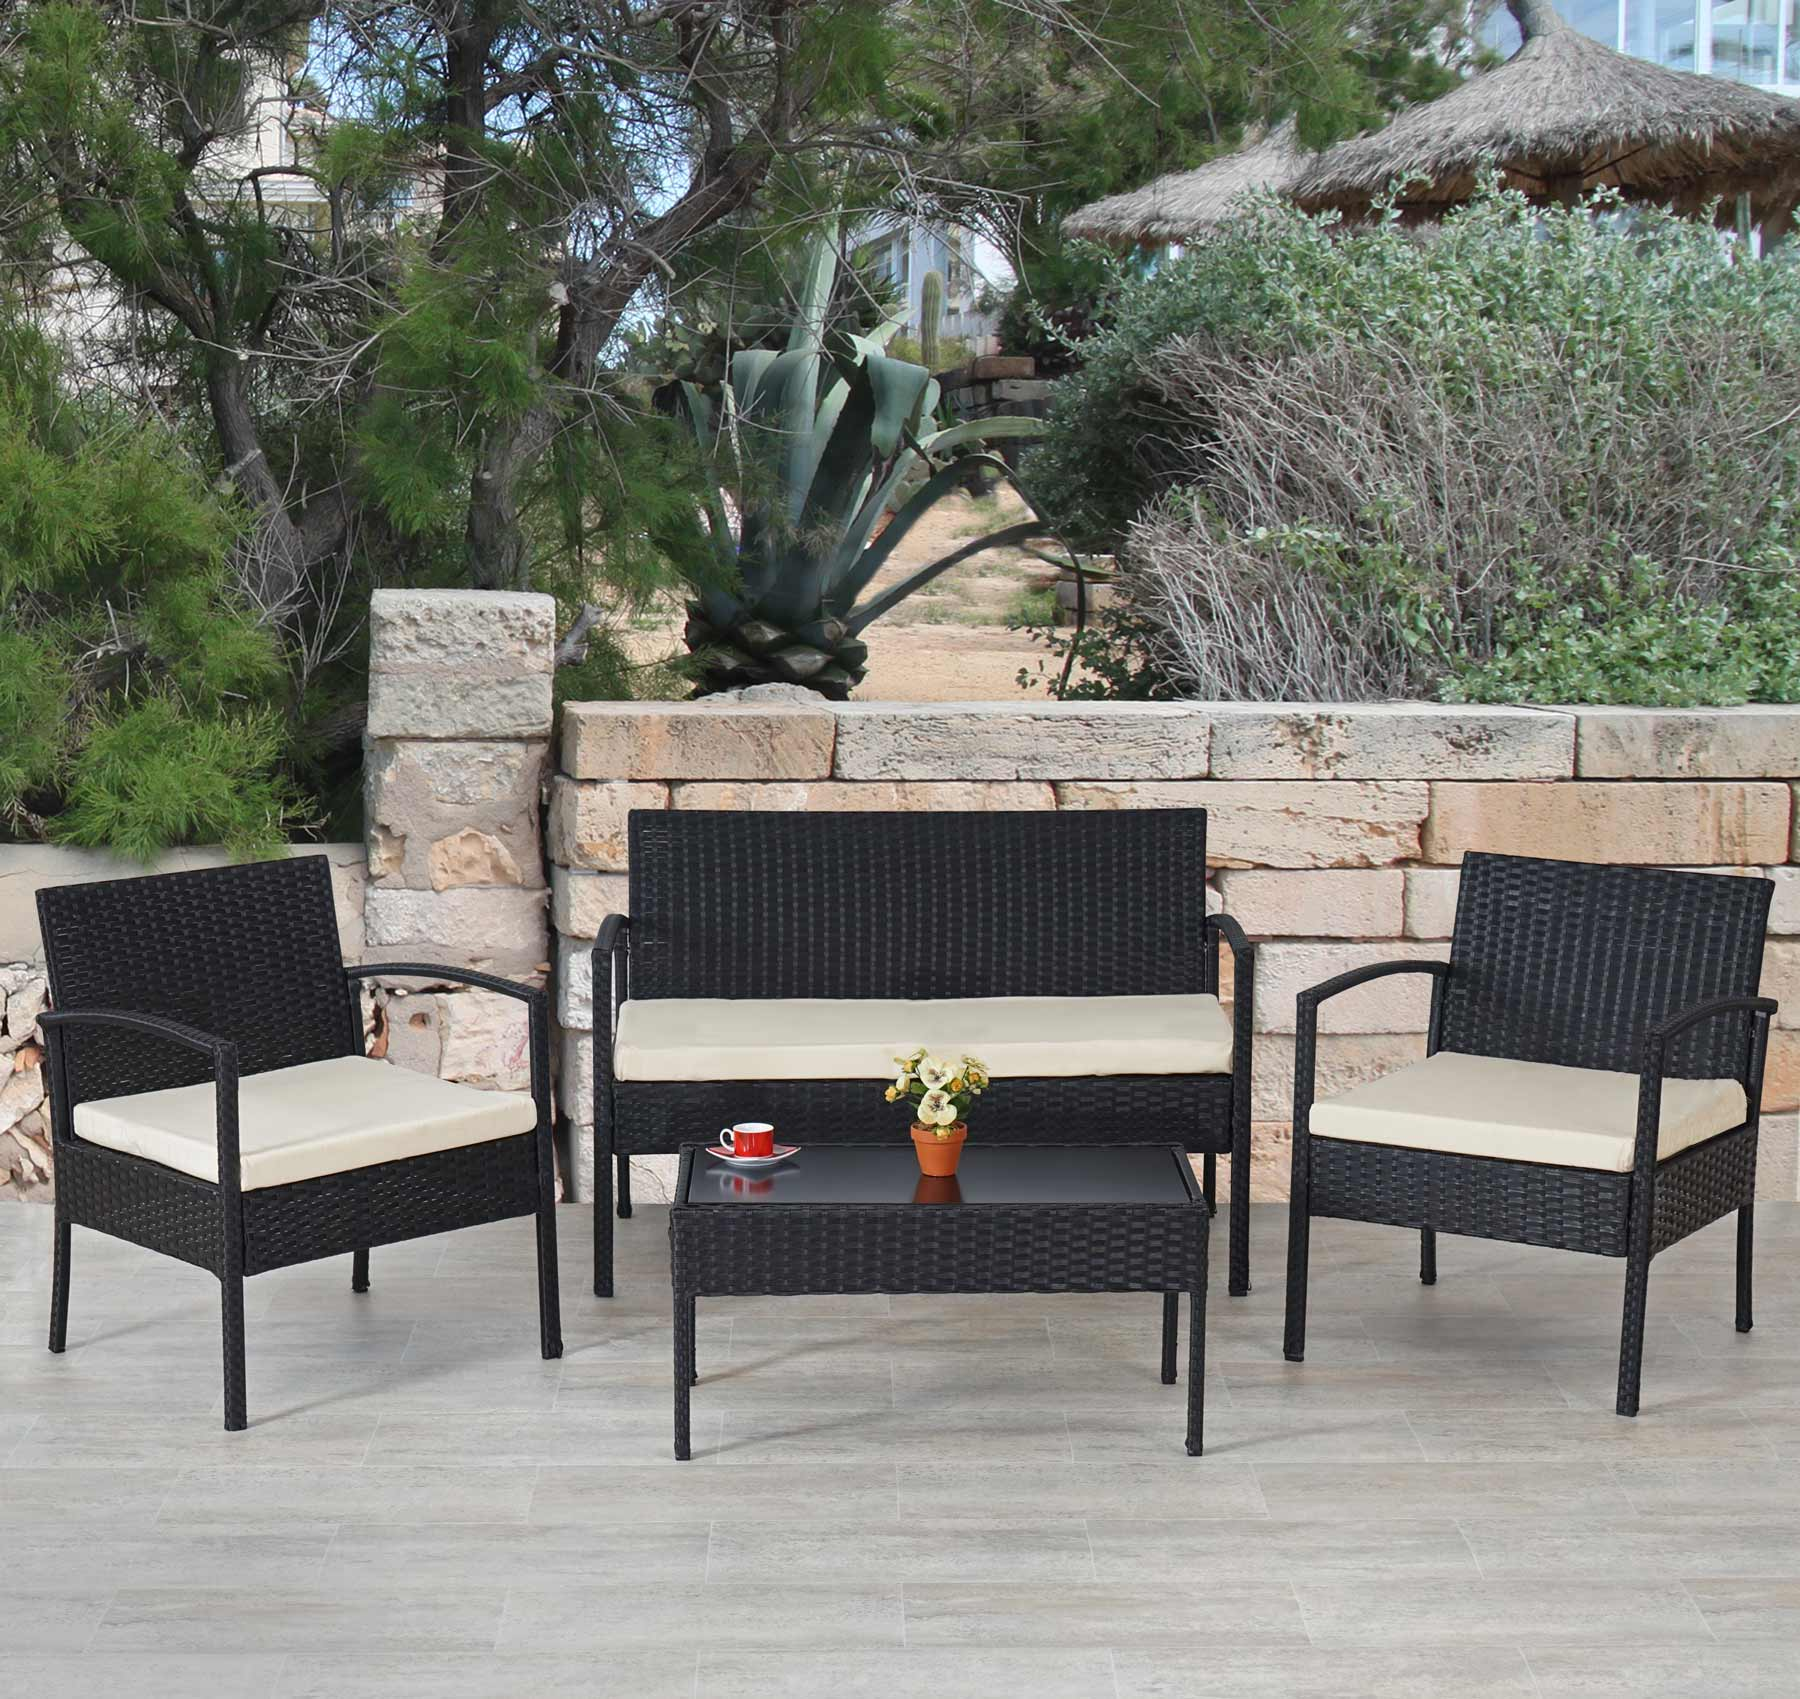 Salottino set da esterno alicante polyrattan con cuscini for Salottino da esterno offerte